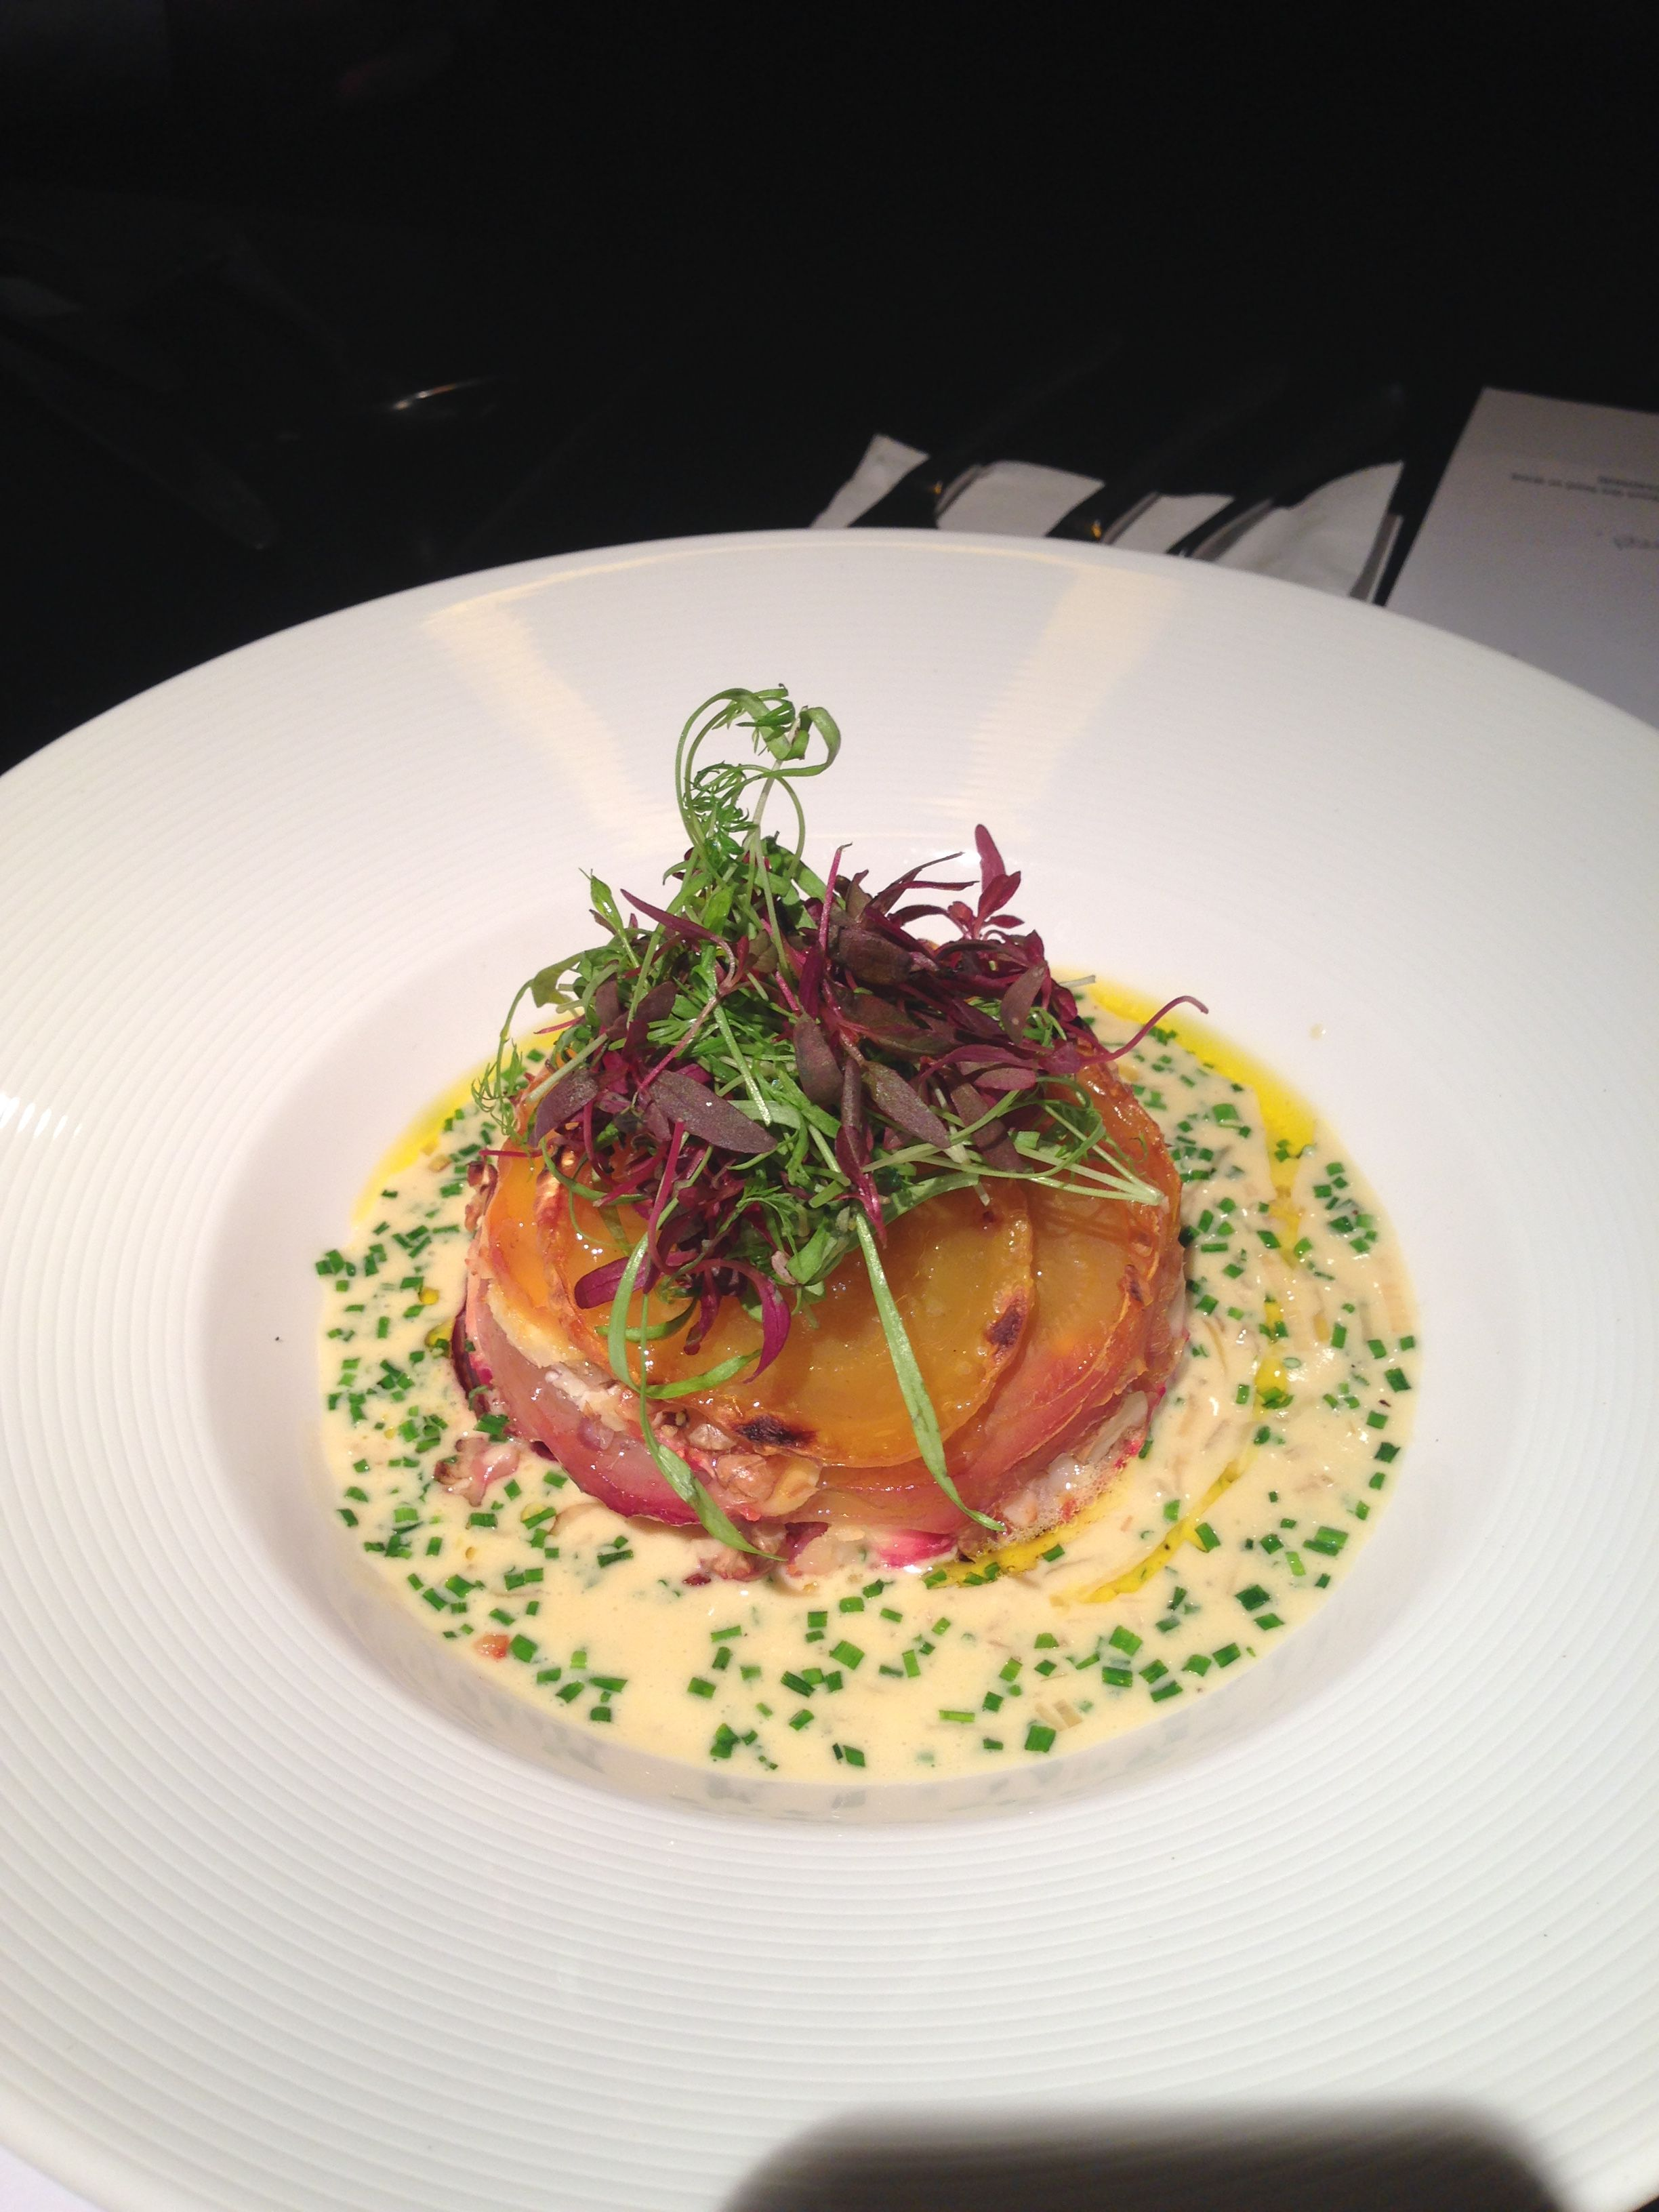 Just some of the fabulous dishes we have had on offer at 113 Restaurant